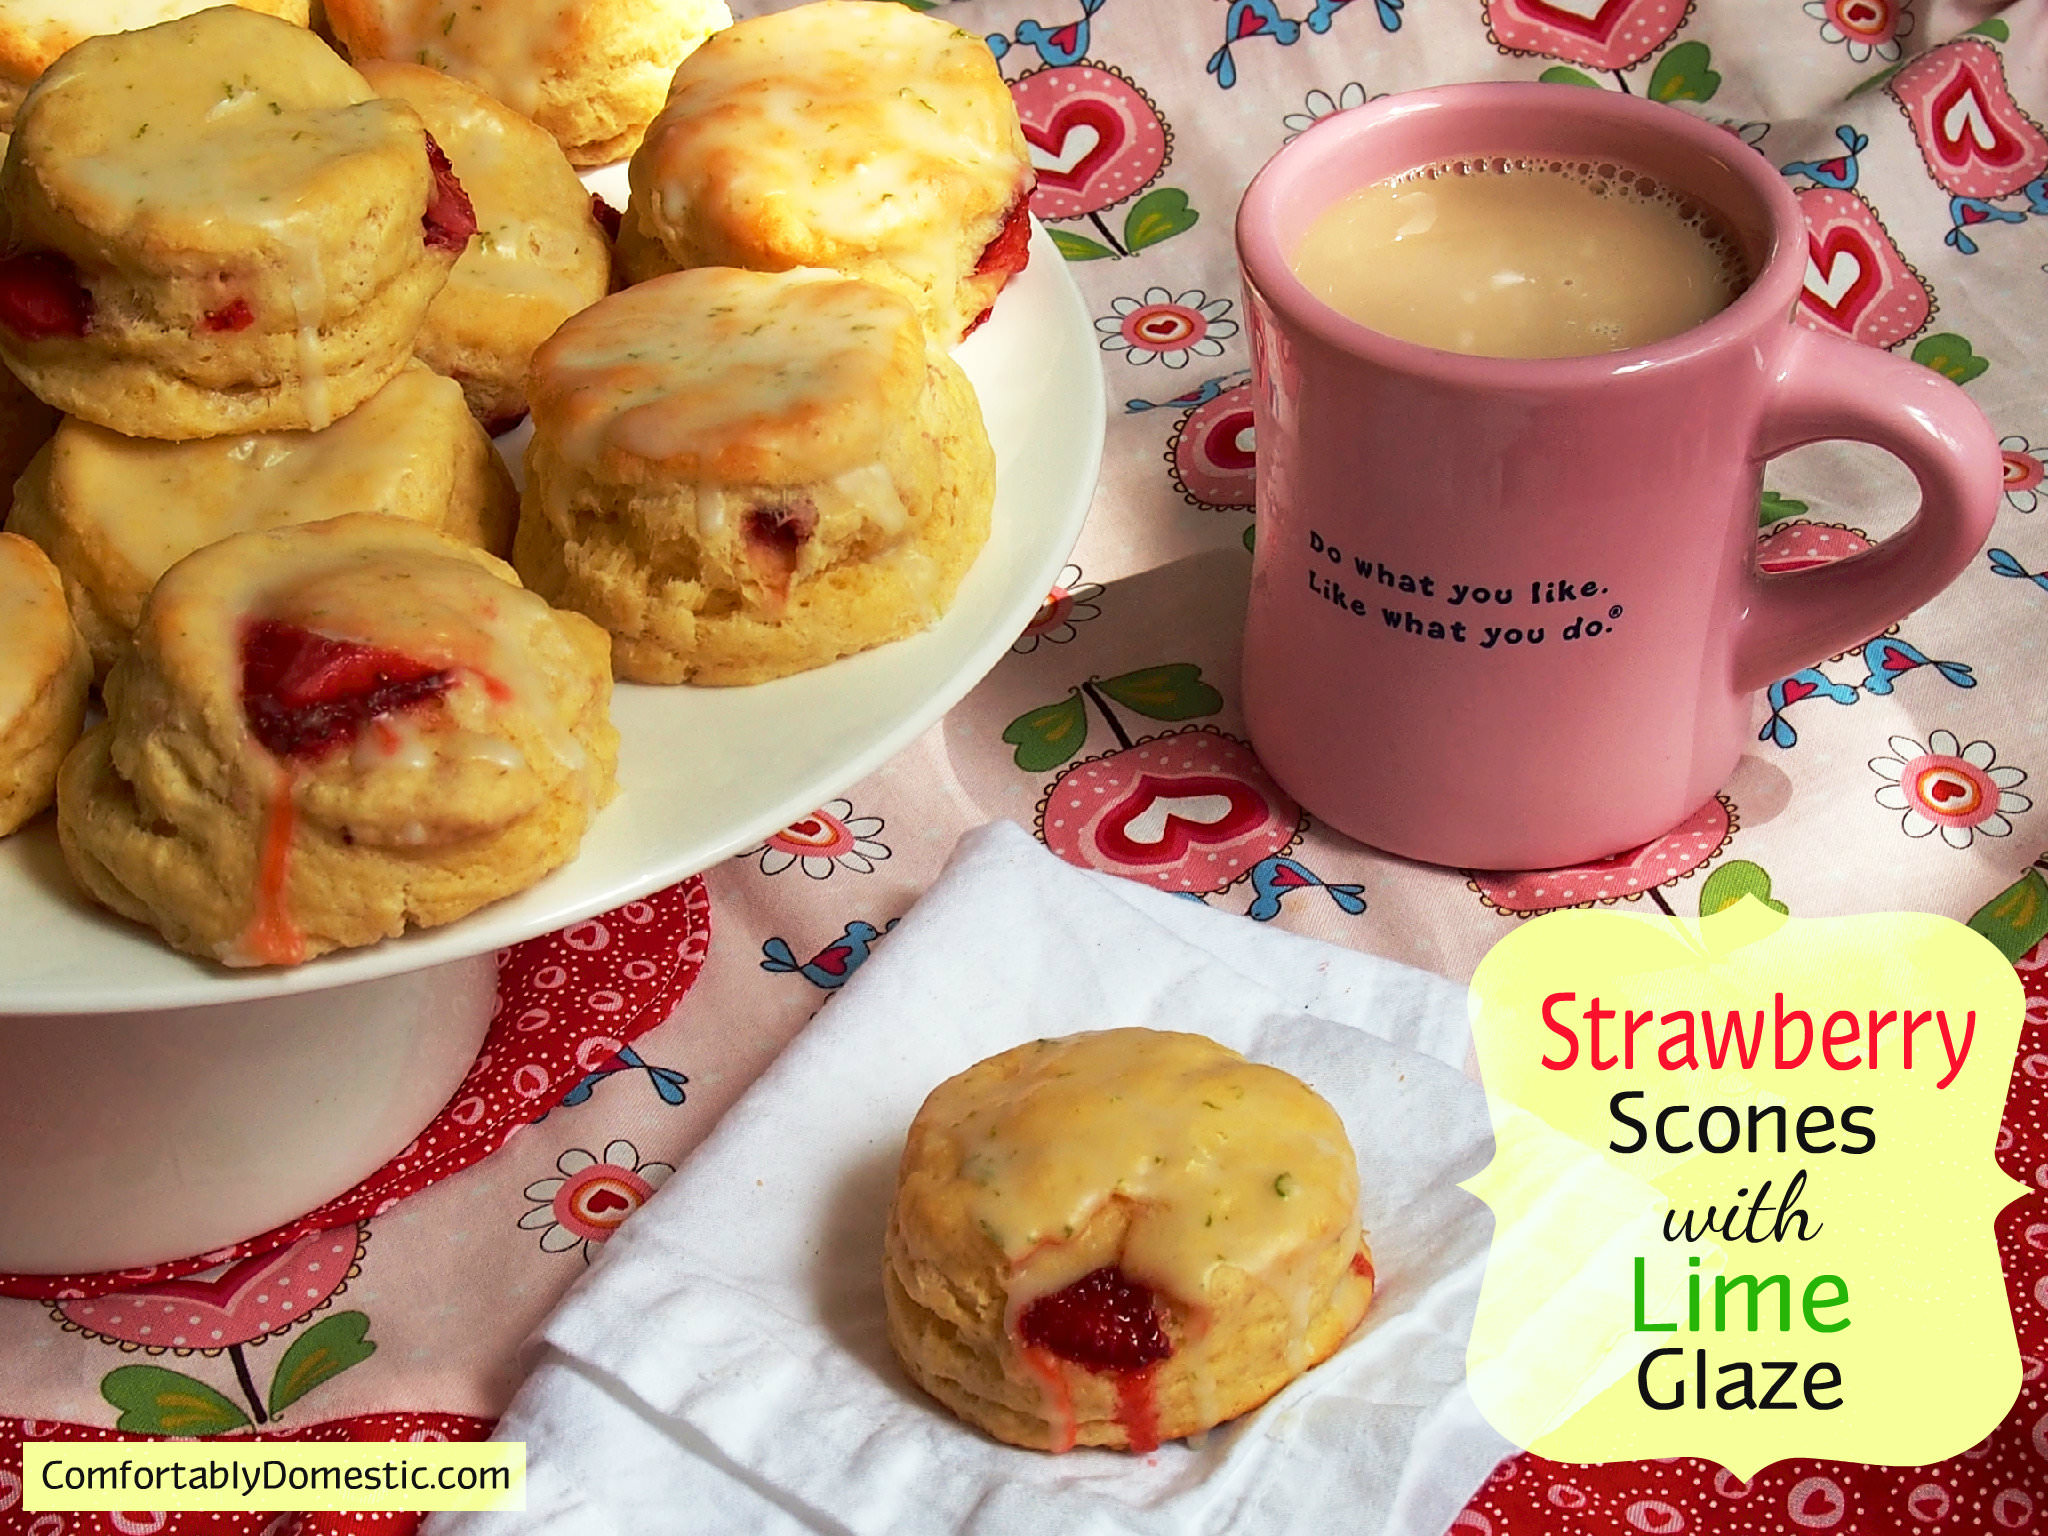 Strawberry Scones with Lime Glaze Header | ComfortablyDomestic.com